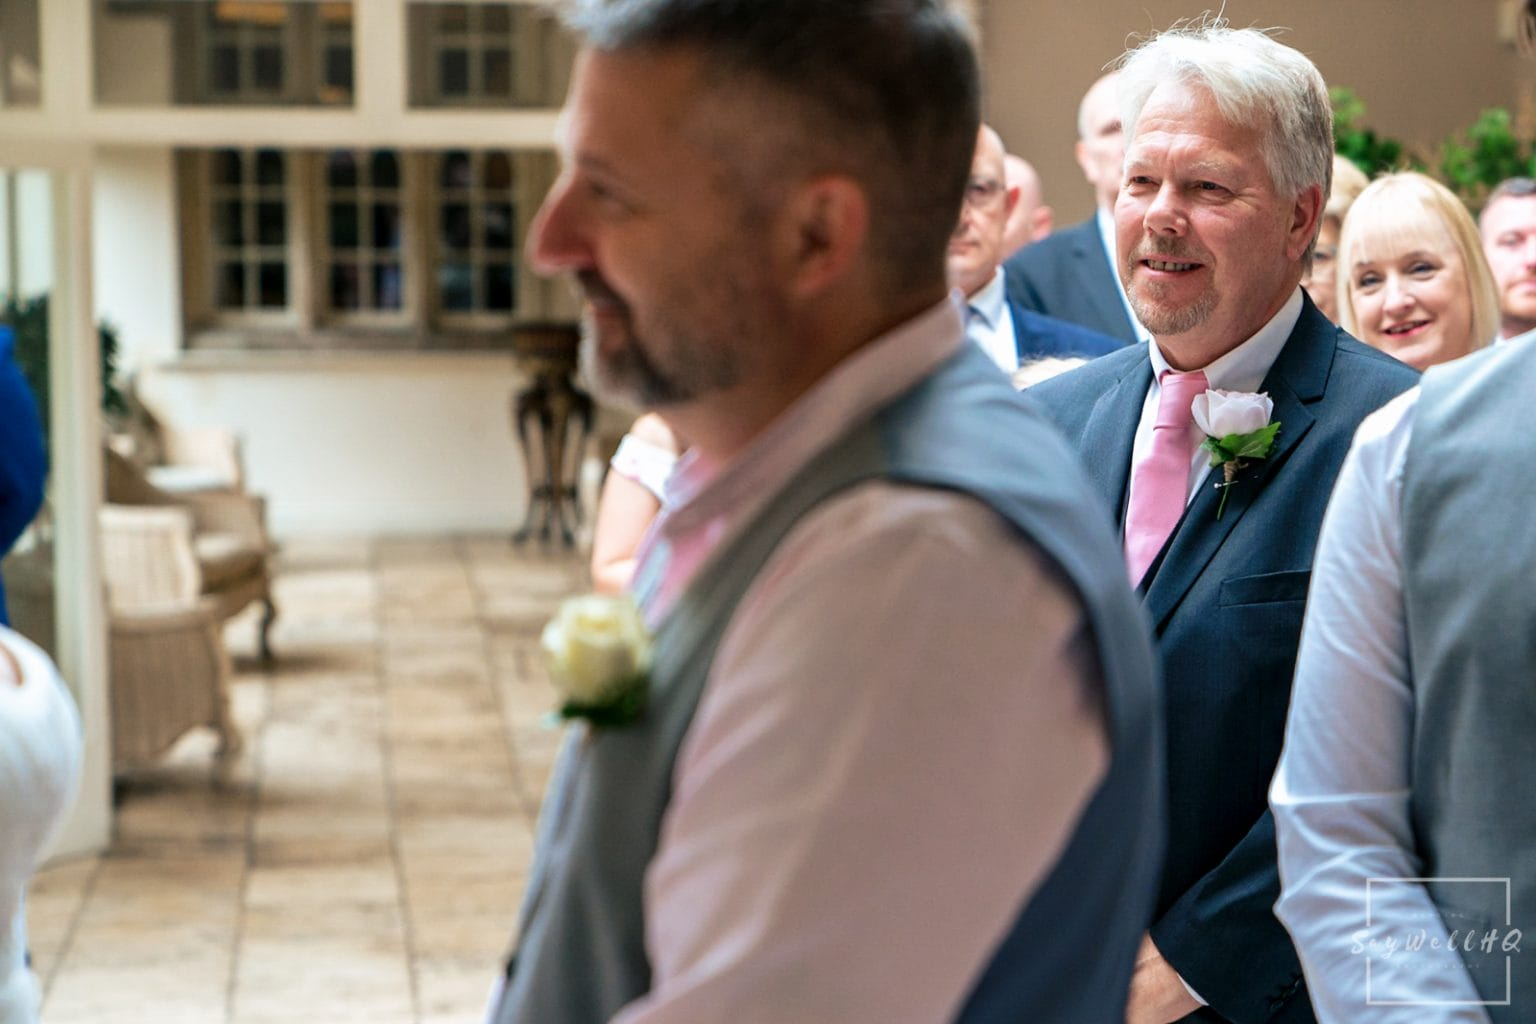 Woodborough Hall Wedding Photography + wedding ceremony wedding guests looking on as the bride and groom exchange rings